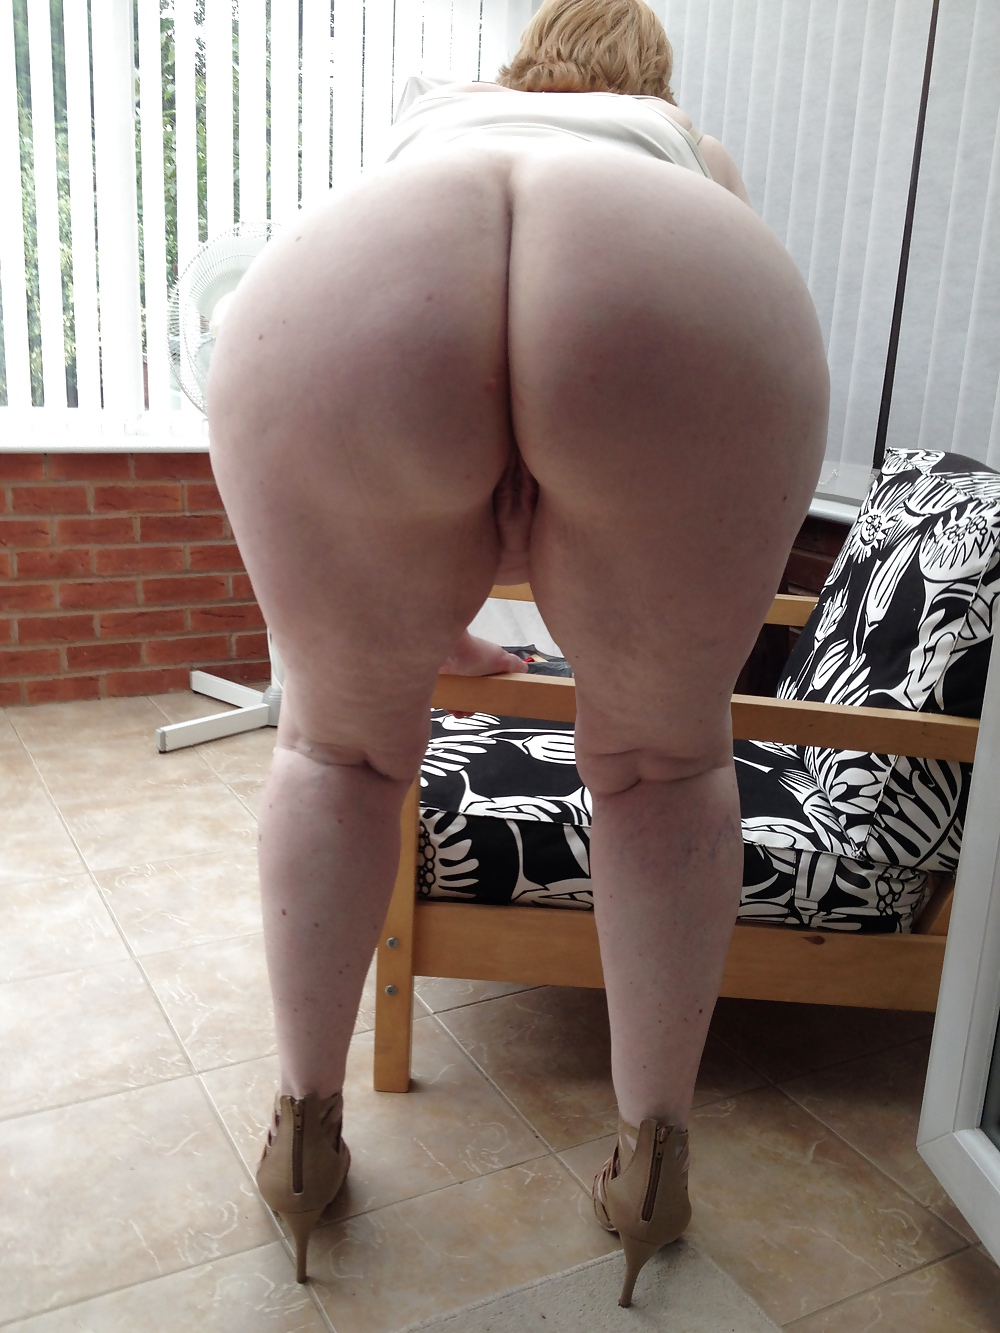 Sexy wide hips and butts topless are